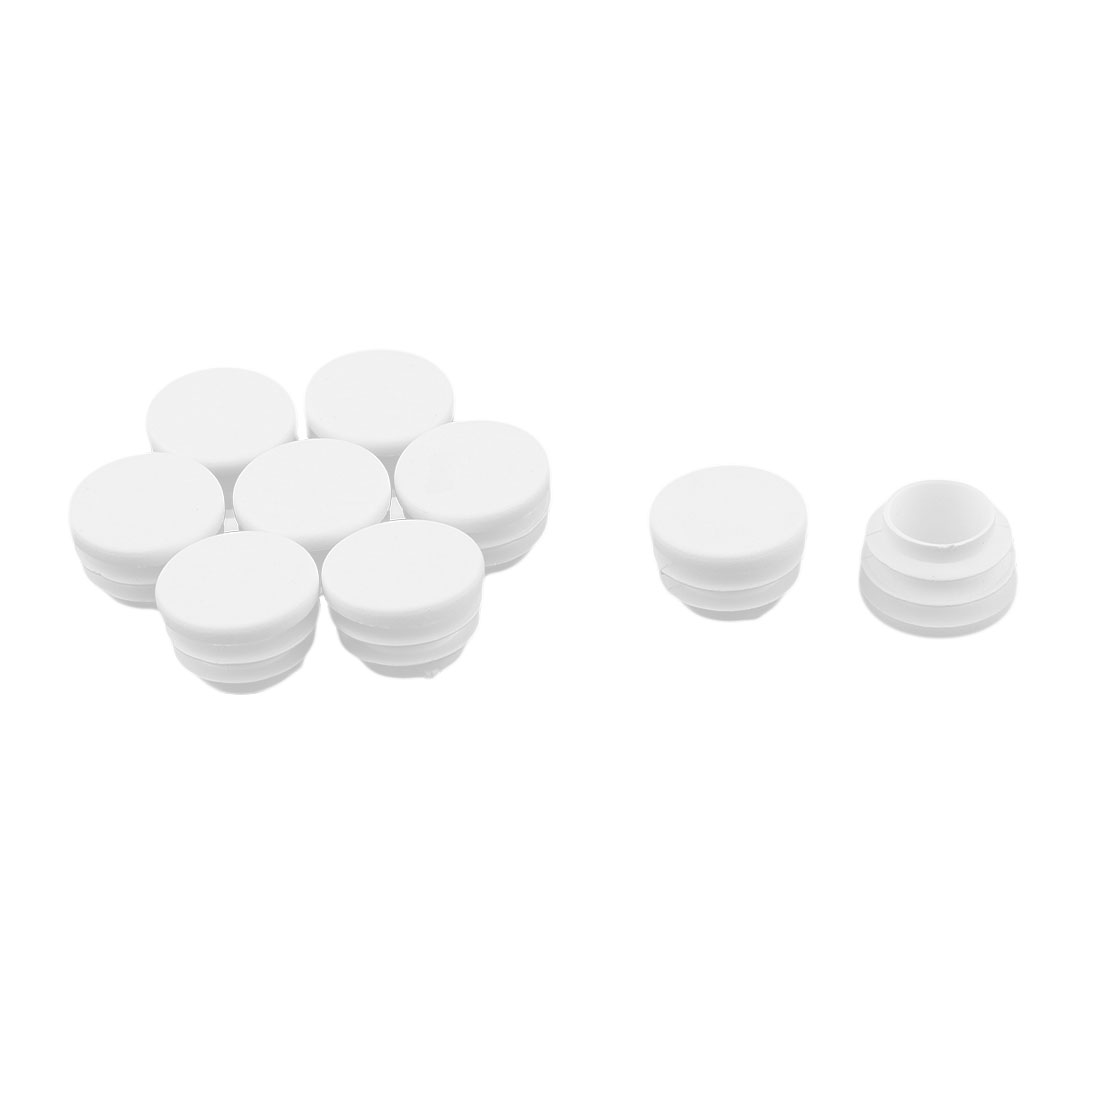 Office Dust Resistant Cabinet Table Desk Leg Tube Pipe Insert End Cap White 9pcs - image 3 of 3